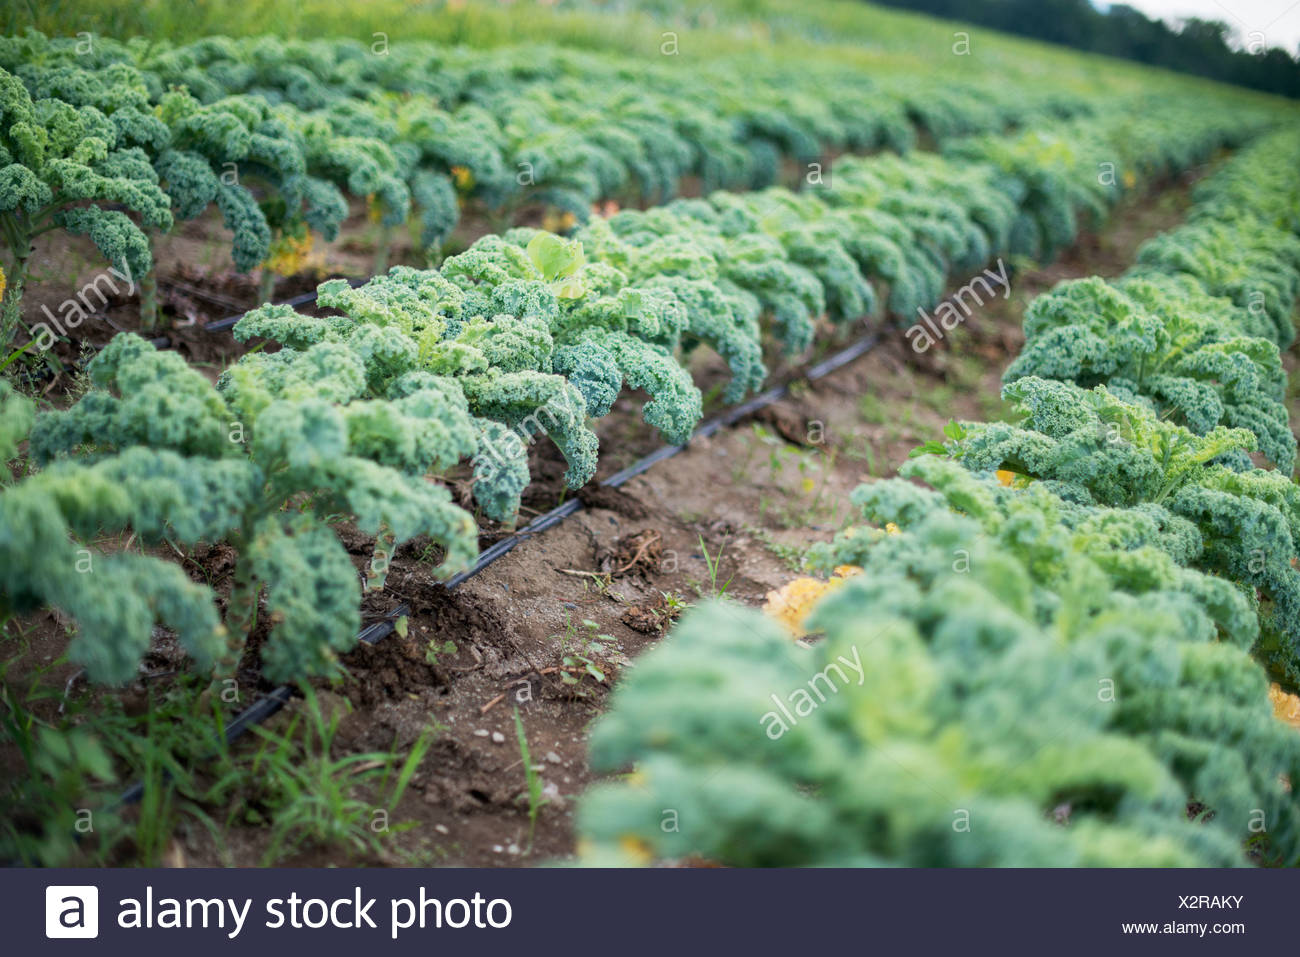 Rows of curly green vegetable plants growing on an organic farm. - Stock Image